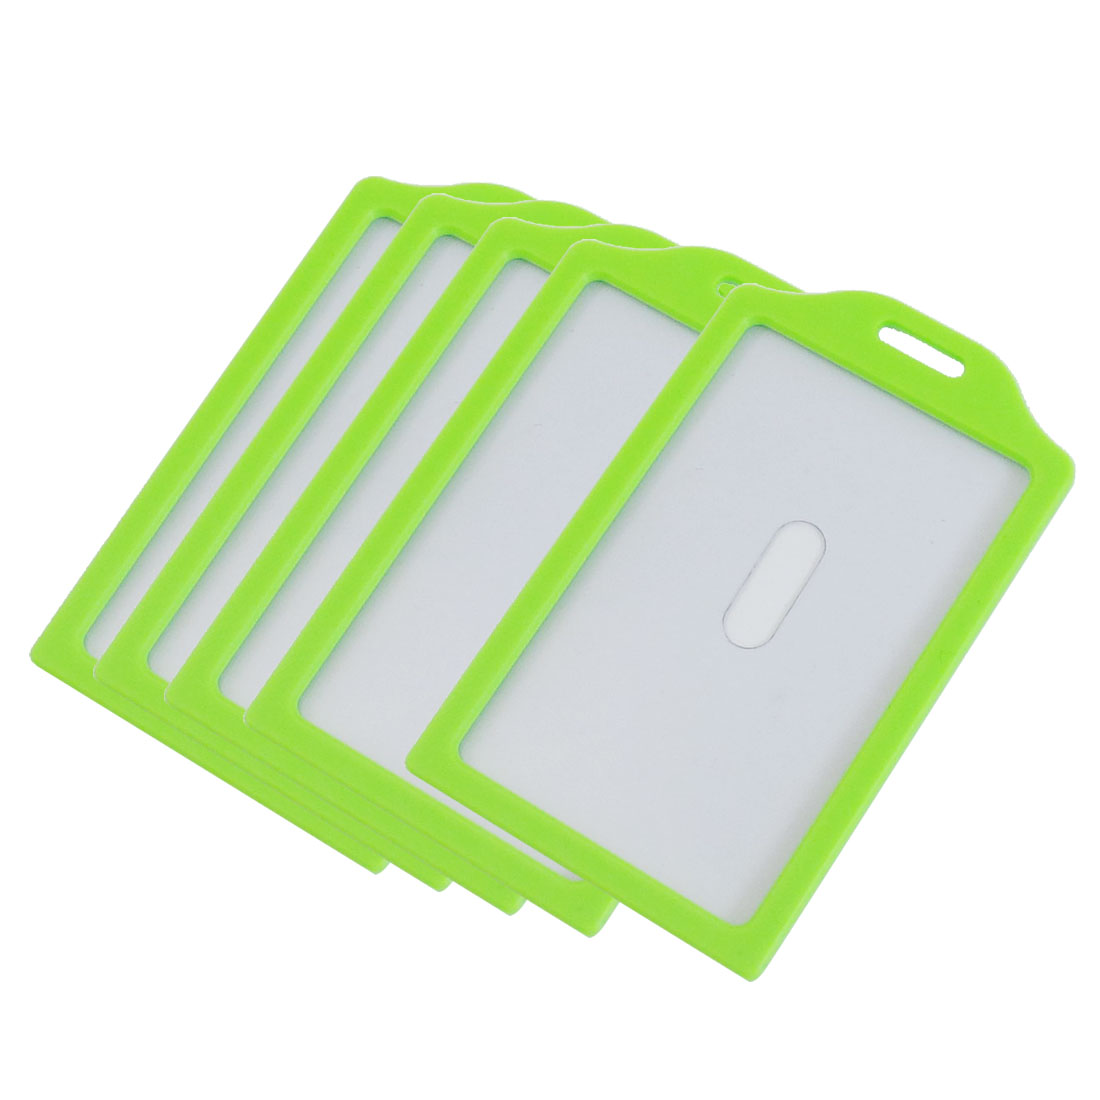 Green Clear Plastic Vertical Business Working ID Badge Name Card Holder 5 Pcs